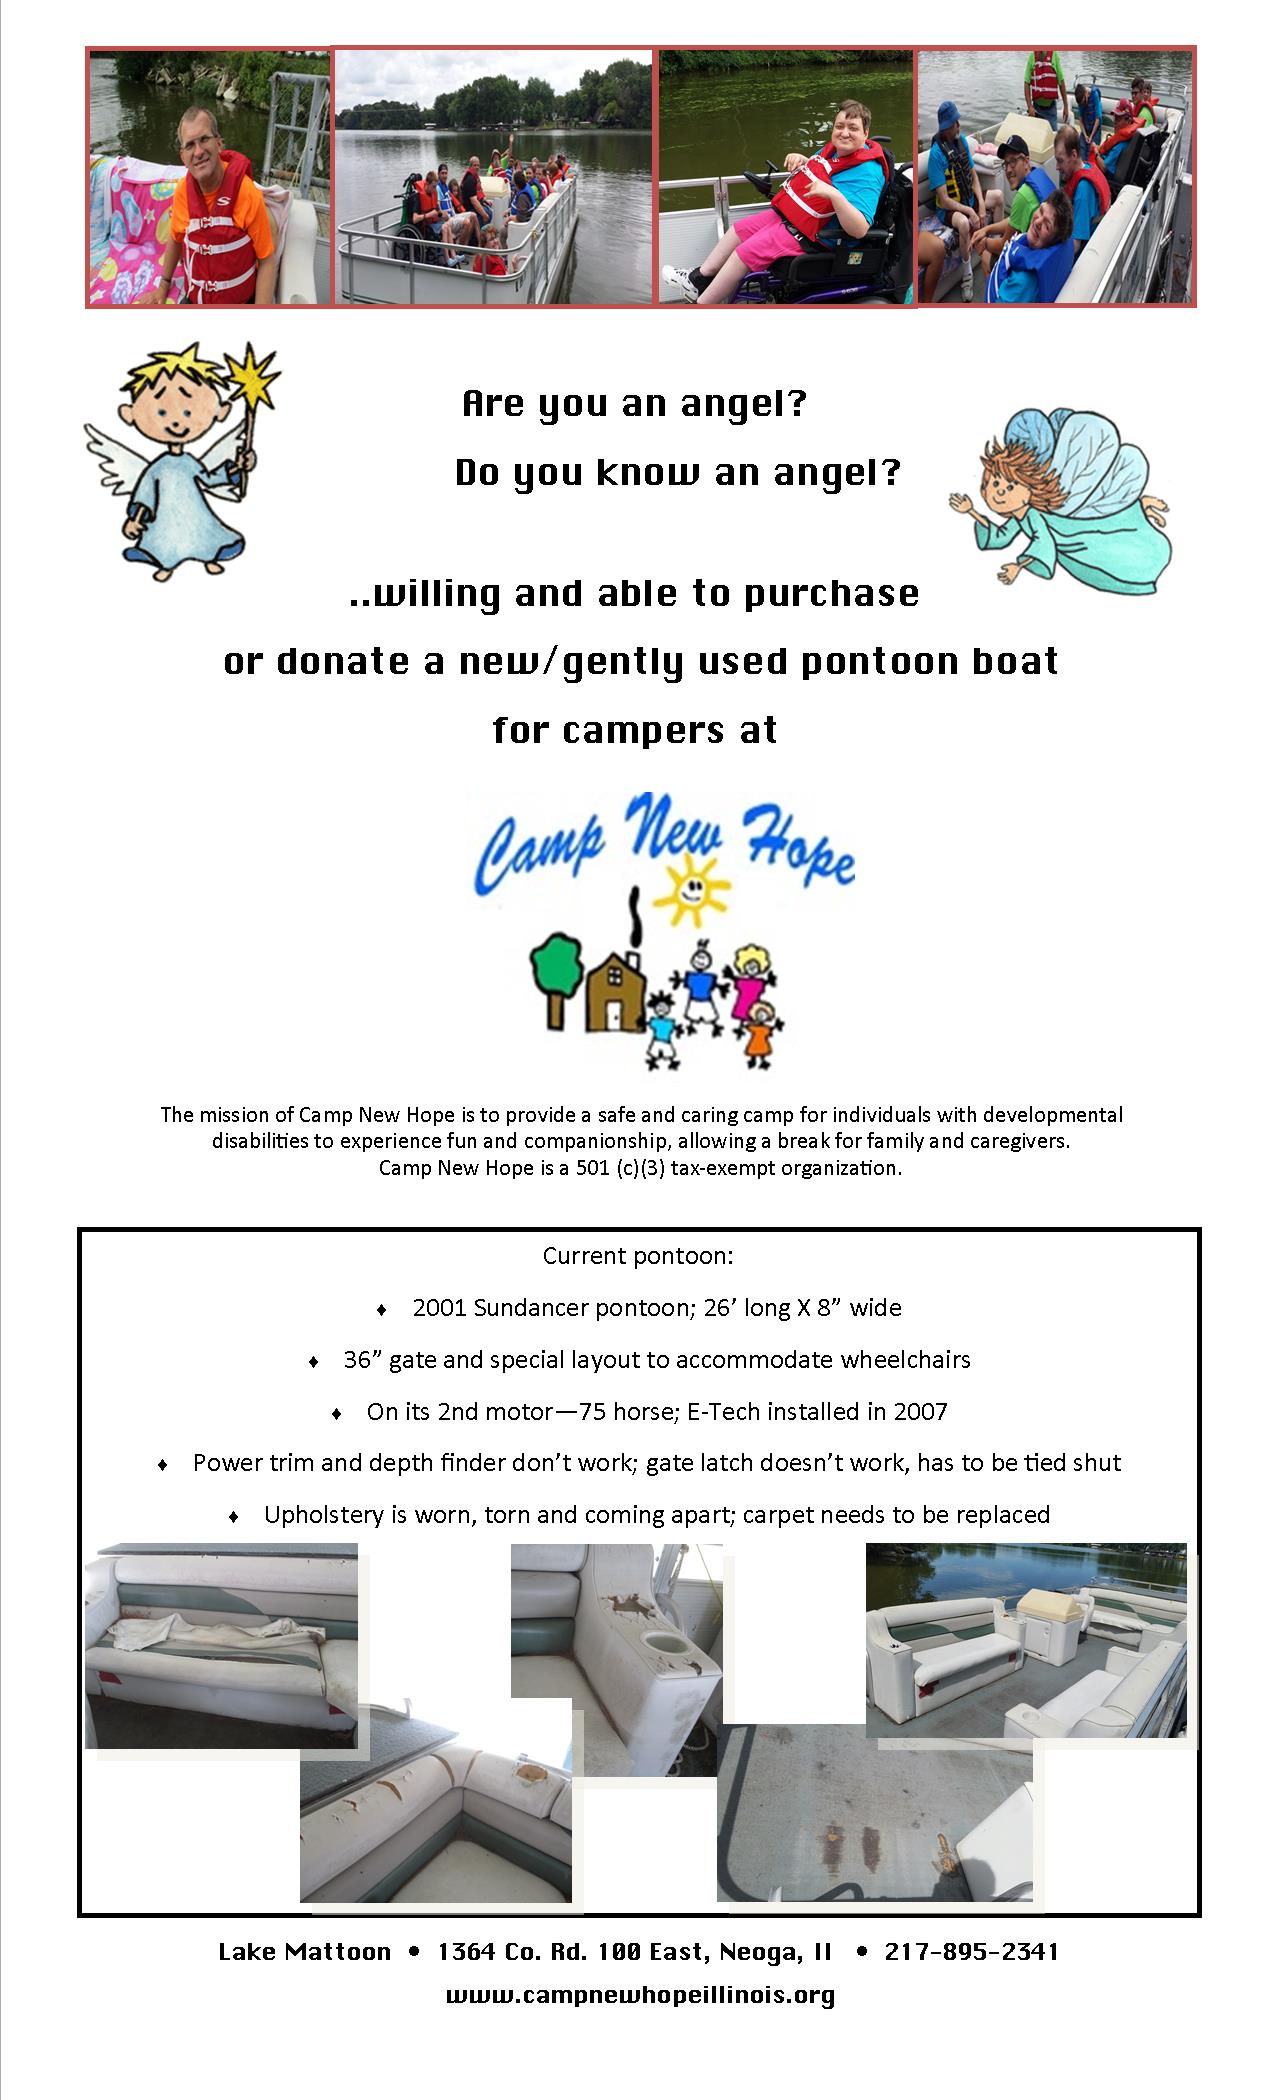 Pontoon Boat Needed for Camp New Hope